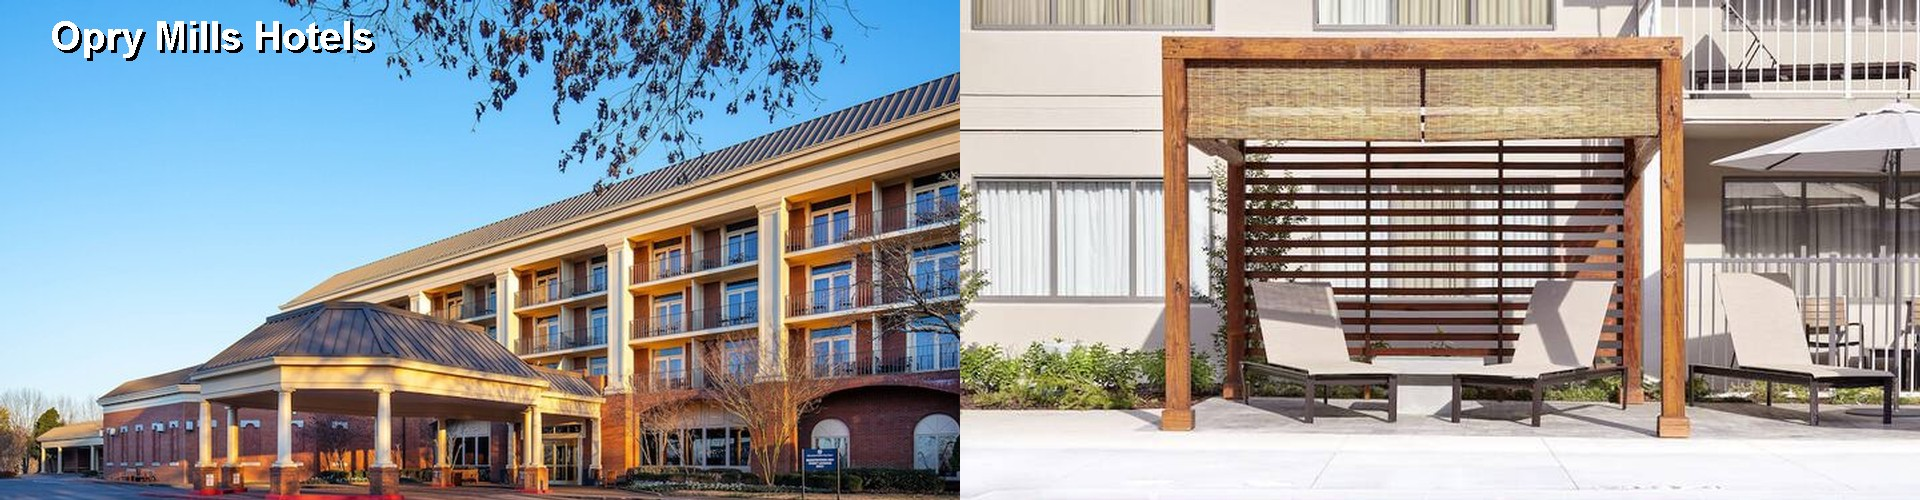 $47+ Hotels Near Opry Mills in Nashville TN